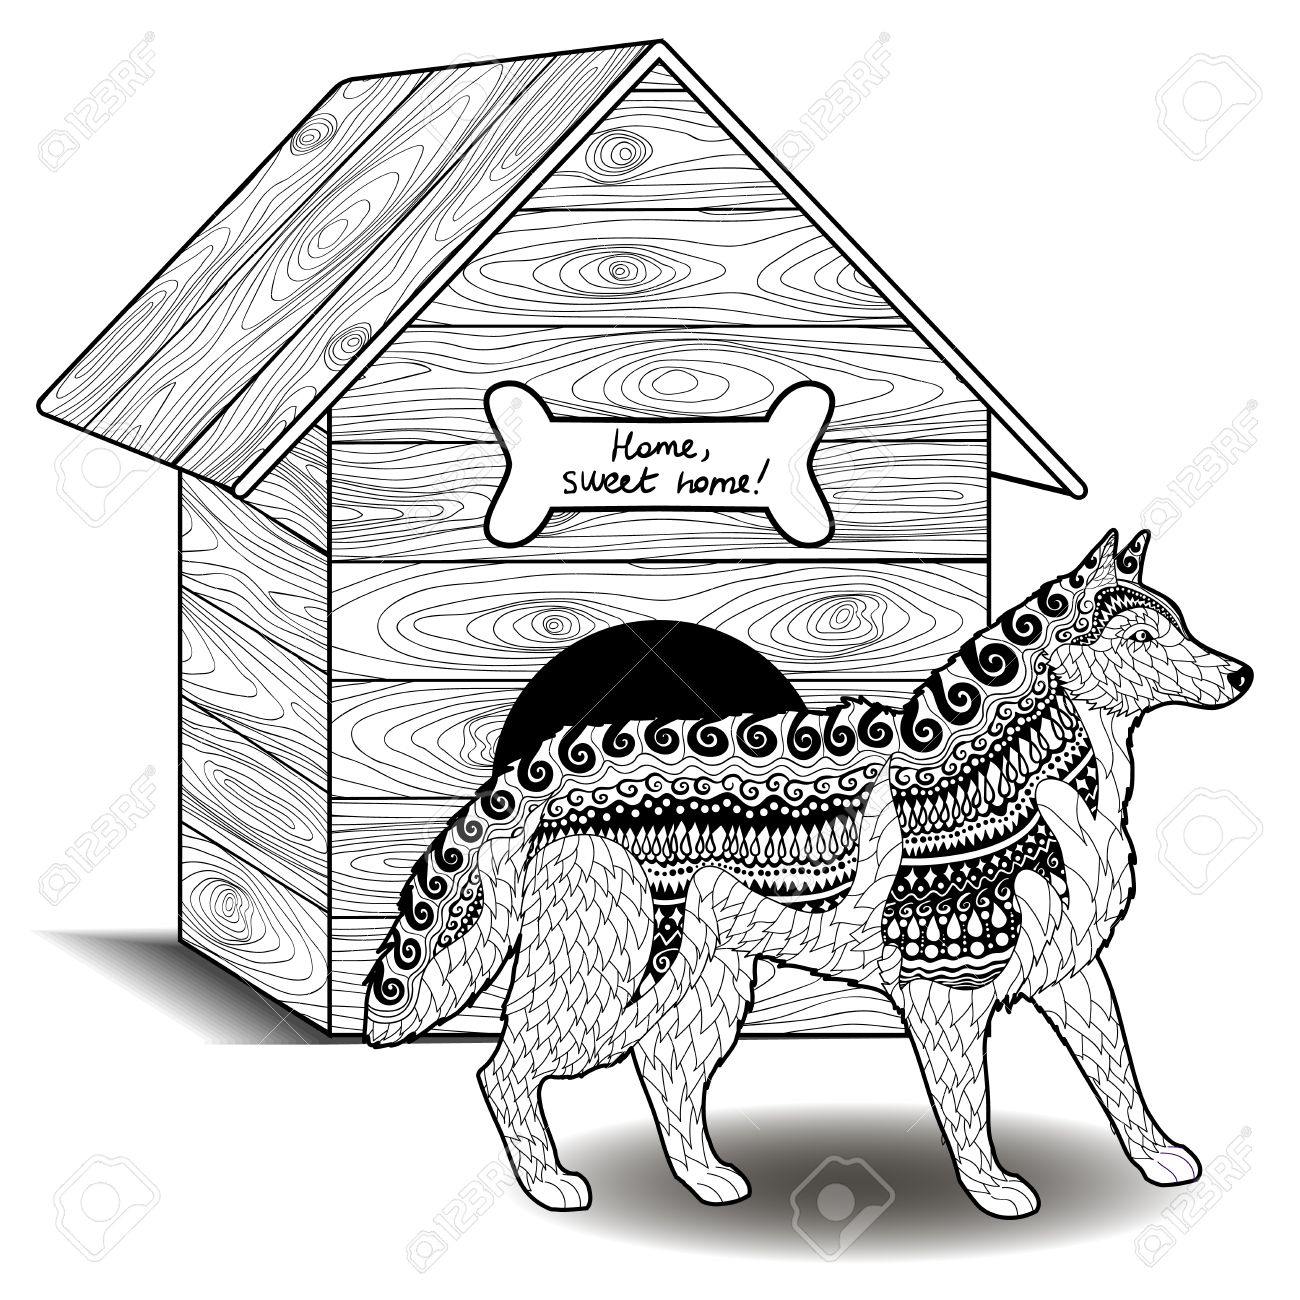 high detail patterned husky in style coloring page with